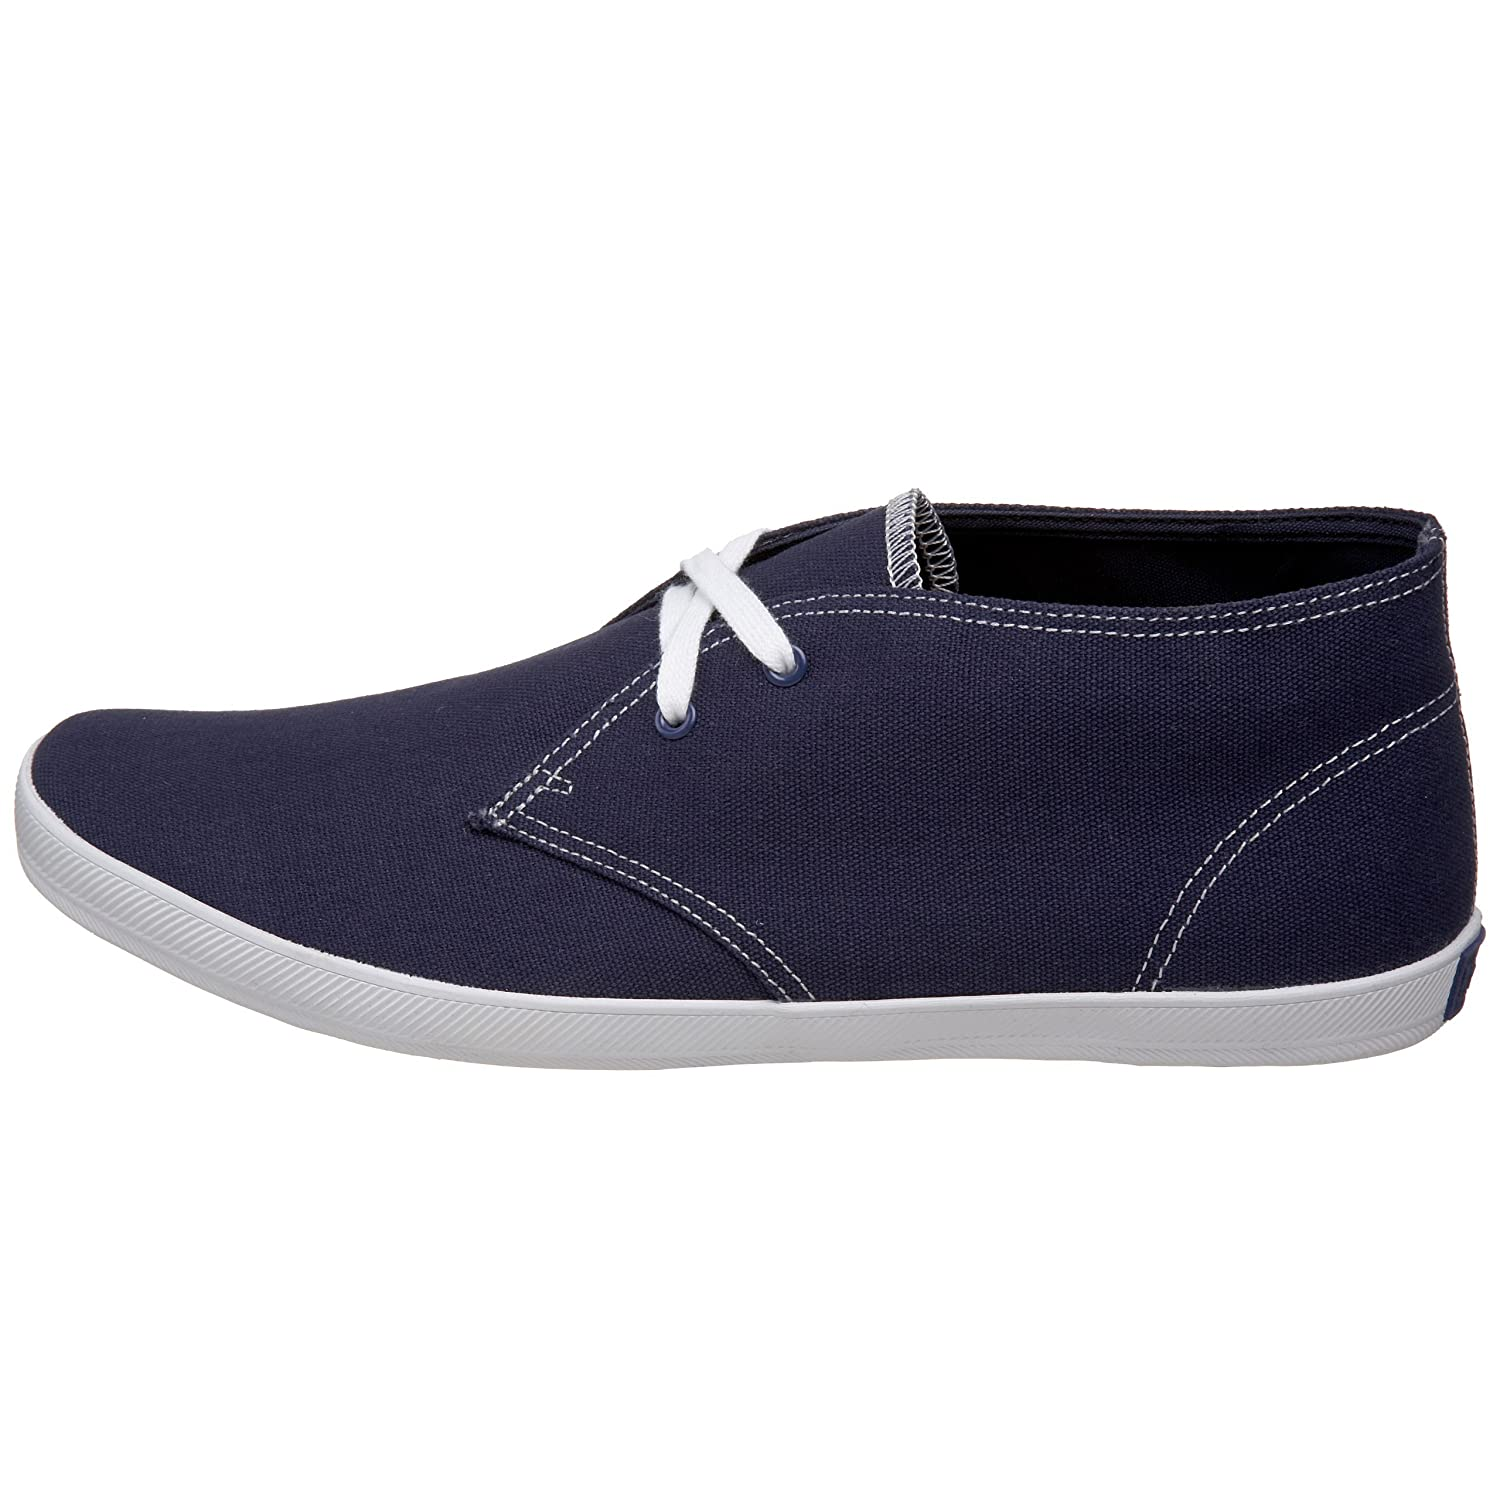 Keds Mens Champion Chukka Canvas Shoes D Island Moccasine Slip On Lacoste Suede Blue